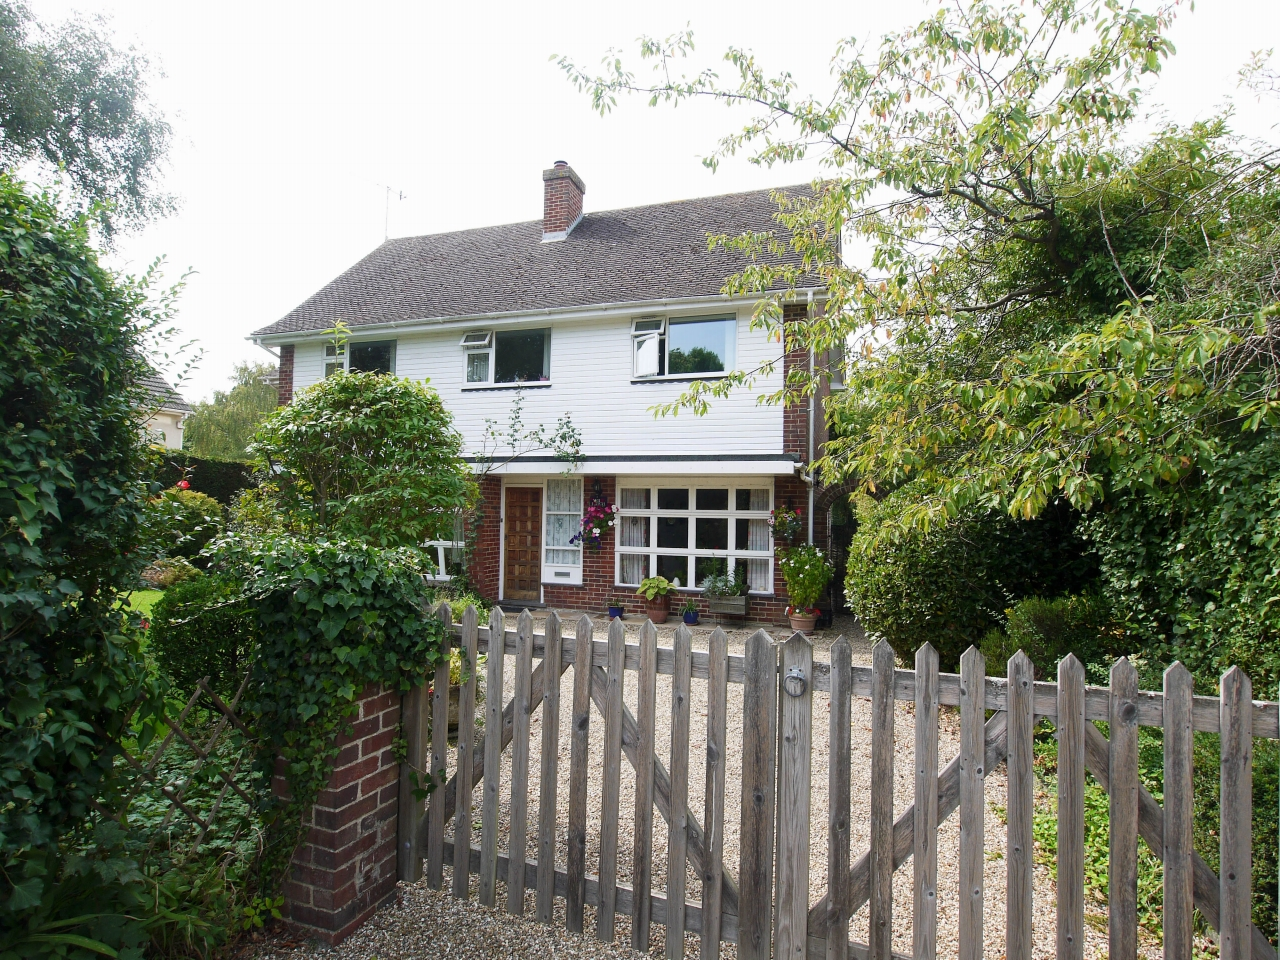 4 bedroom detached house Sold in Tonbridge - Photograph 1